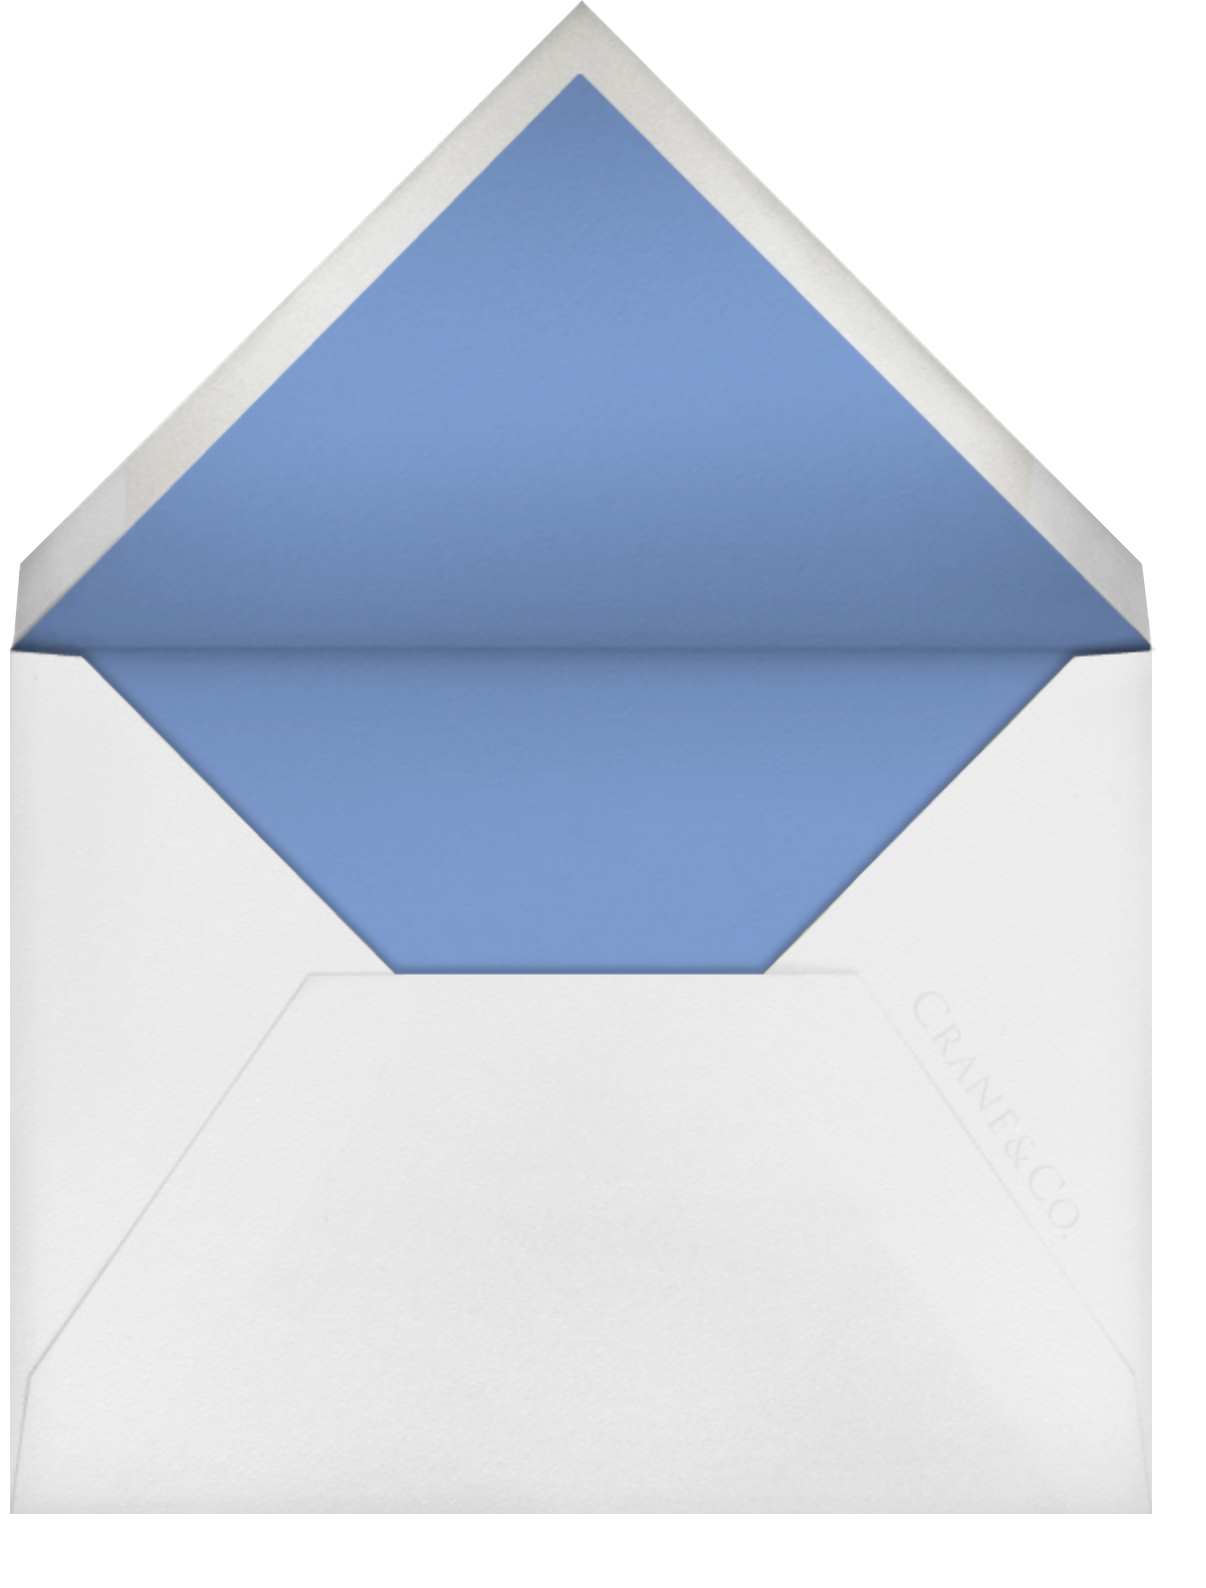 Painted Border - Newport Blue - Paperless Post - Personalized stationery - envelope back